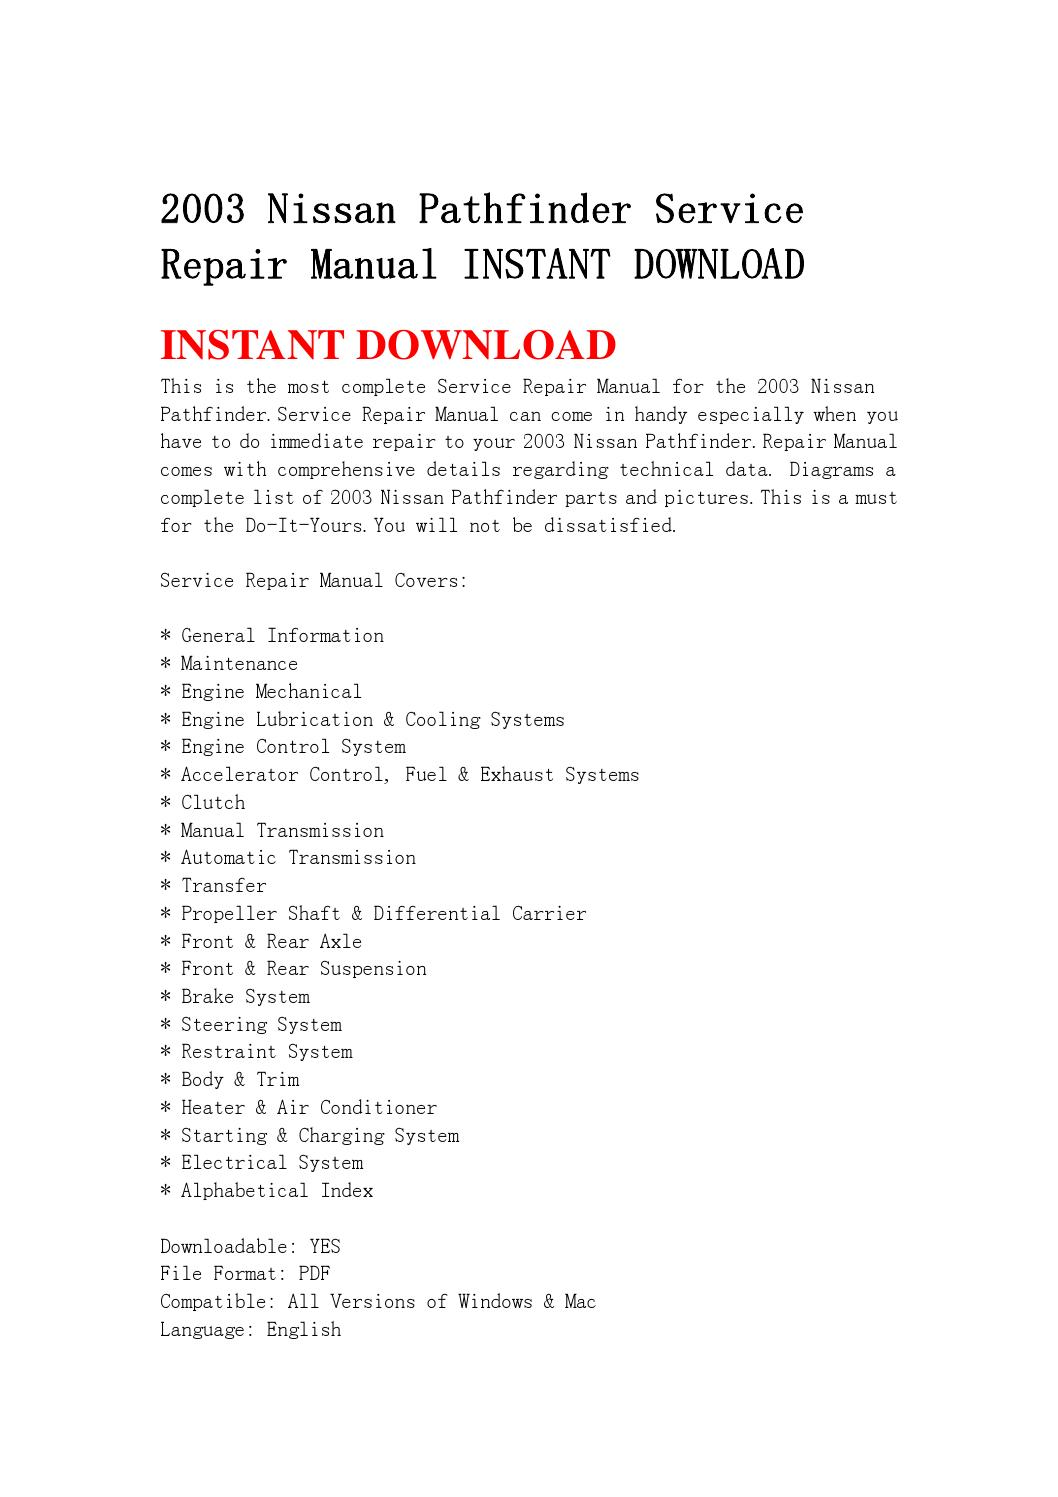 Repair Nissan Pathfinder Clutch Diagram Electrical Wiring Diagrams Saab Transmission 2003 Service Manual Instant Download By 900